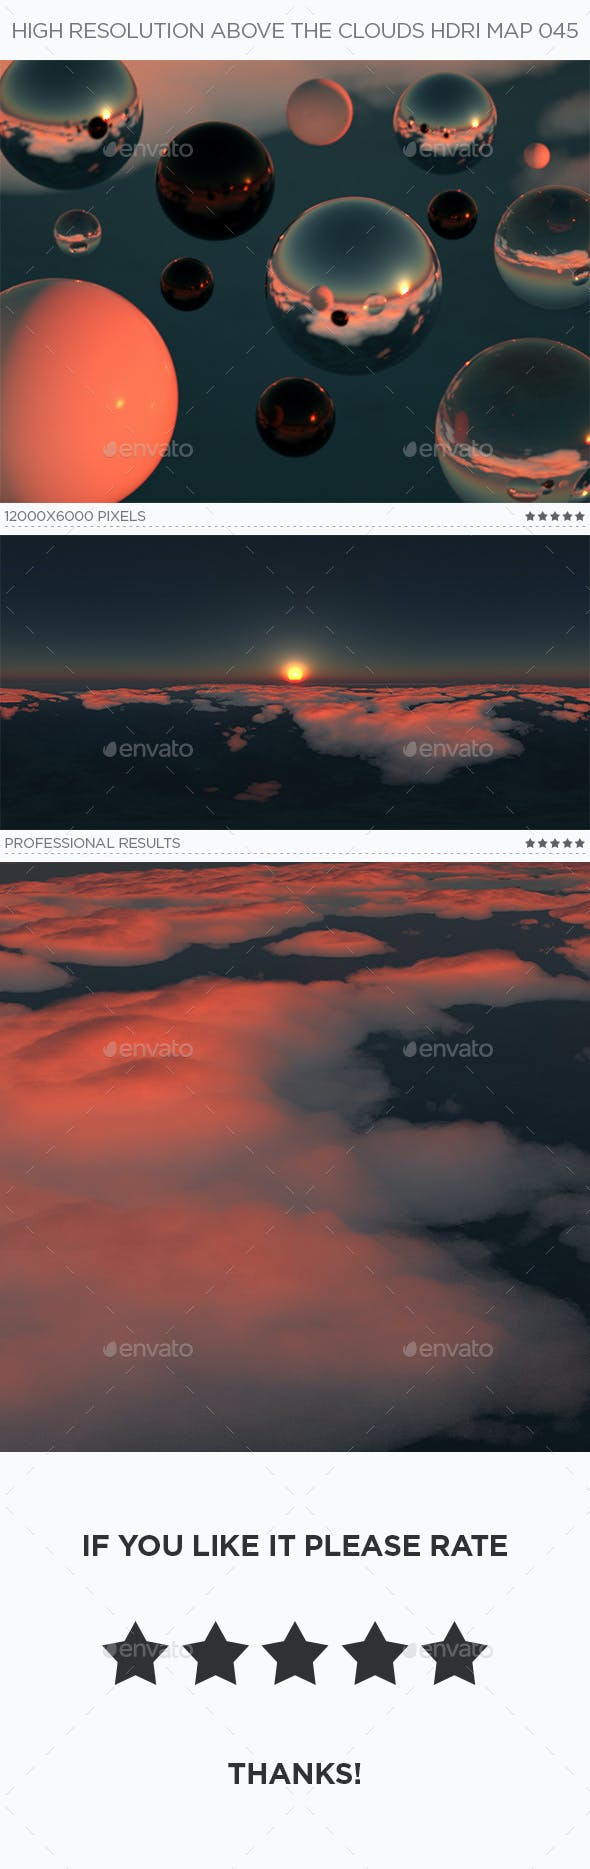 High Resolution Above The Clouds HDRi Map 045 - 3DOcean Item for Sale